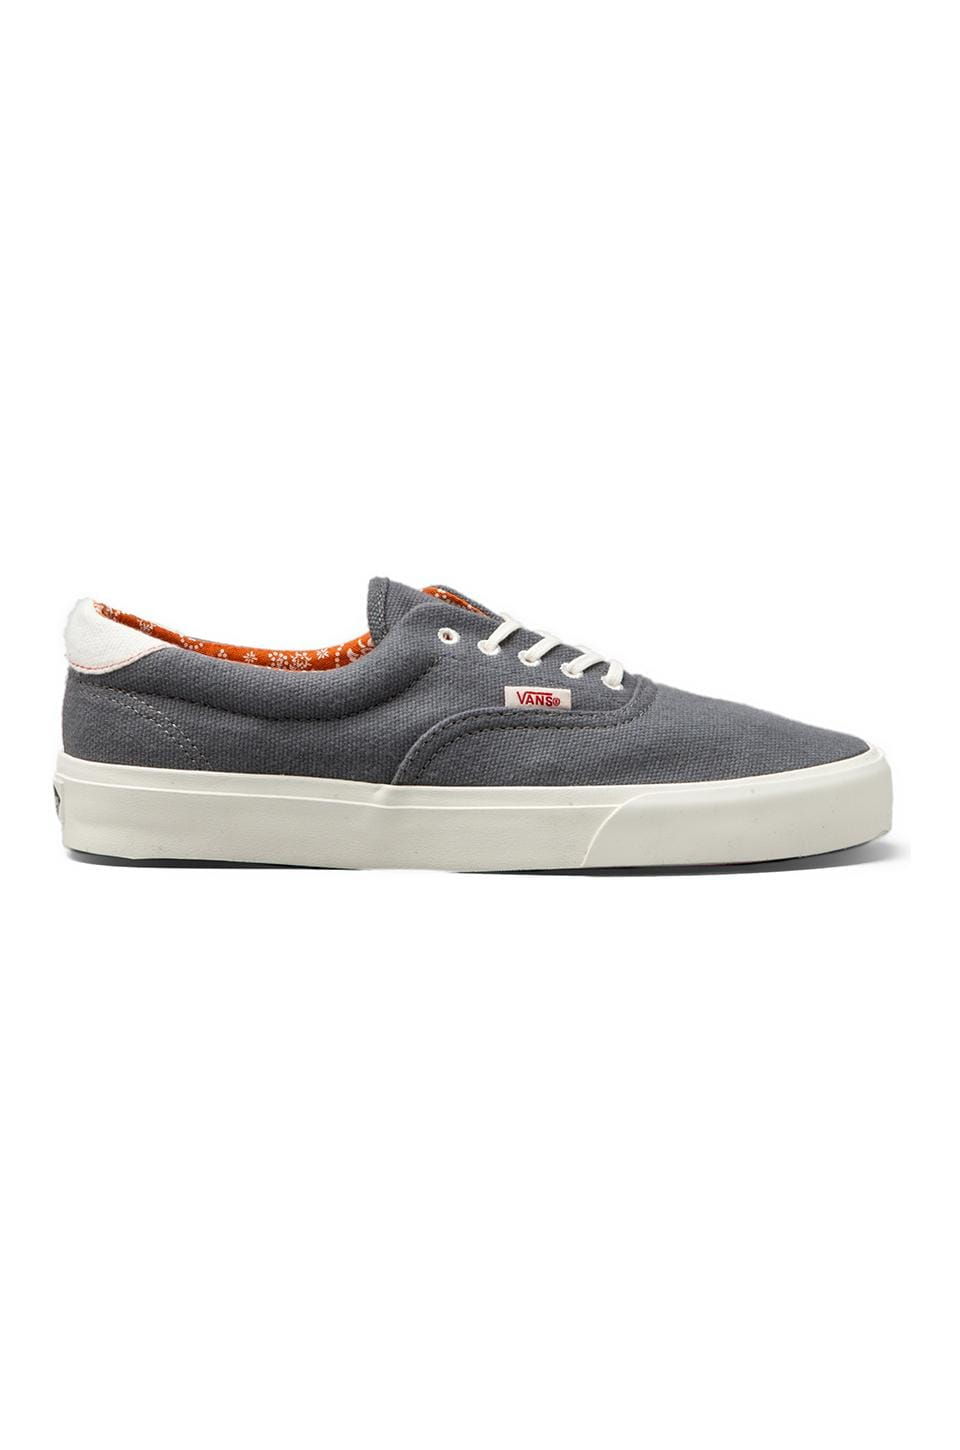 Vans California Era 59 in Sedona Sage